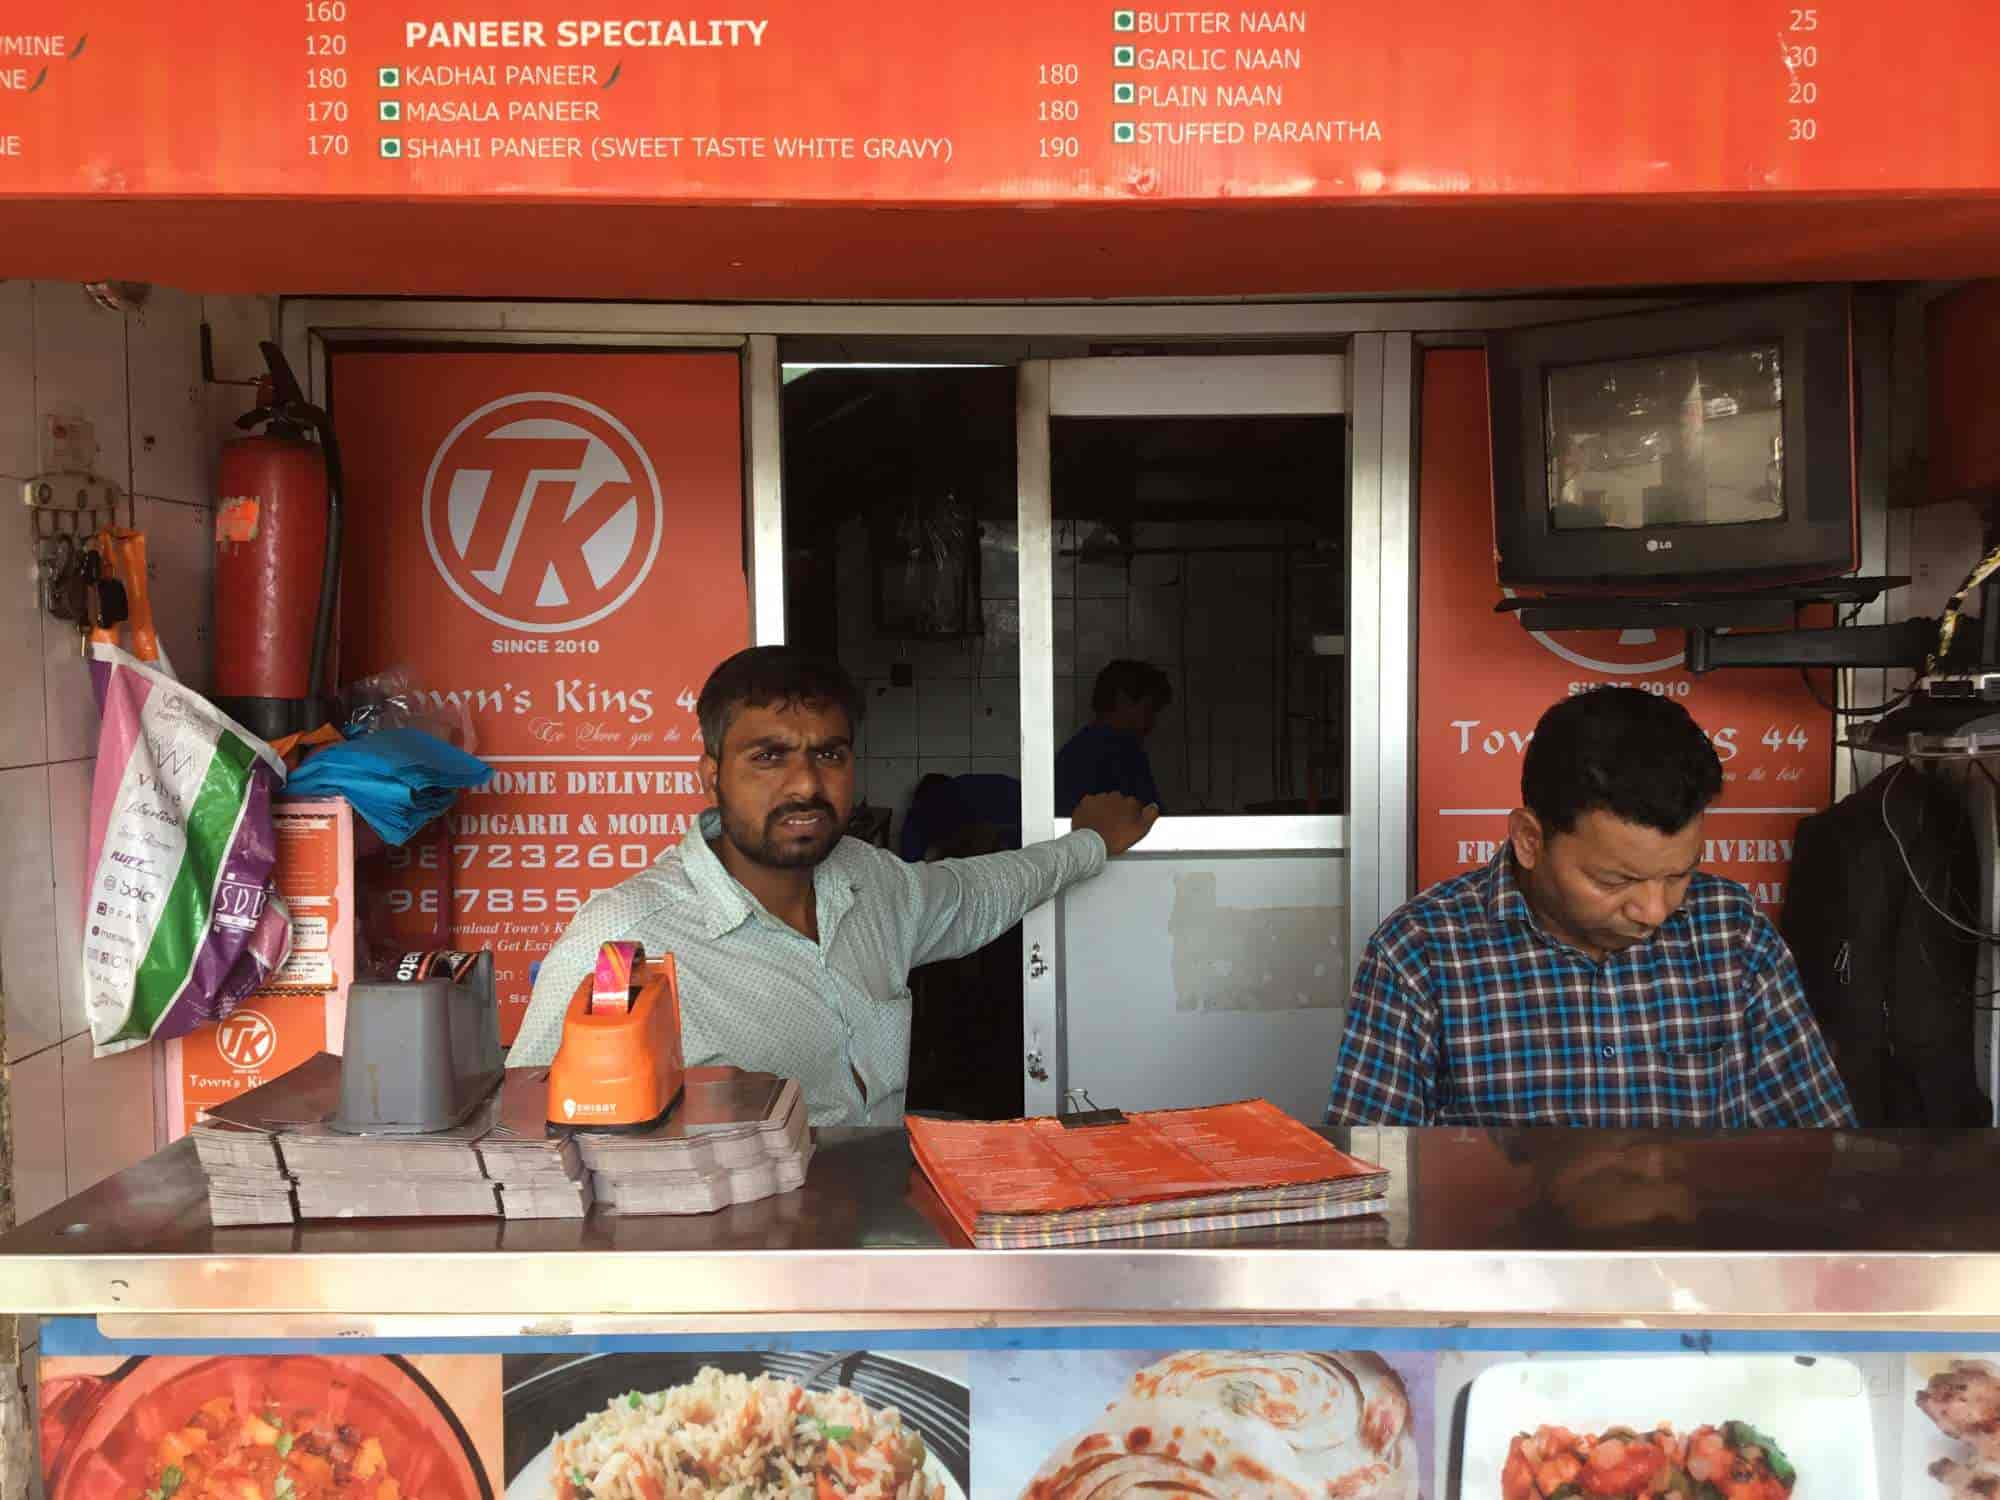 Town's King 44, Chandigarh Sector 44d, Chandigarh - Chinese